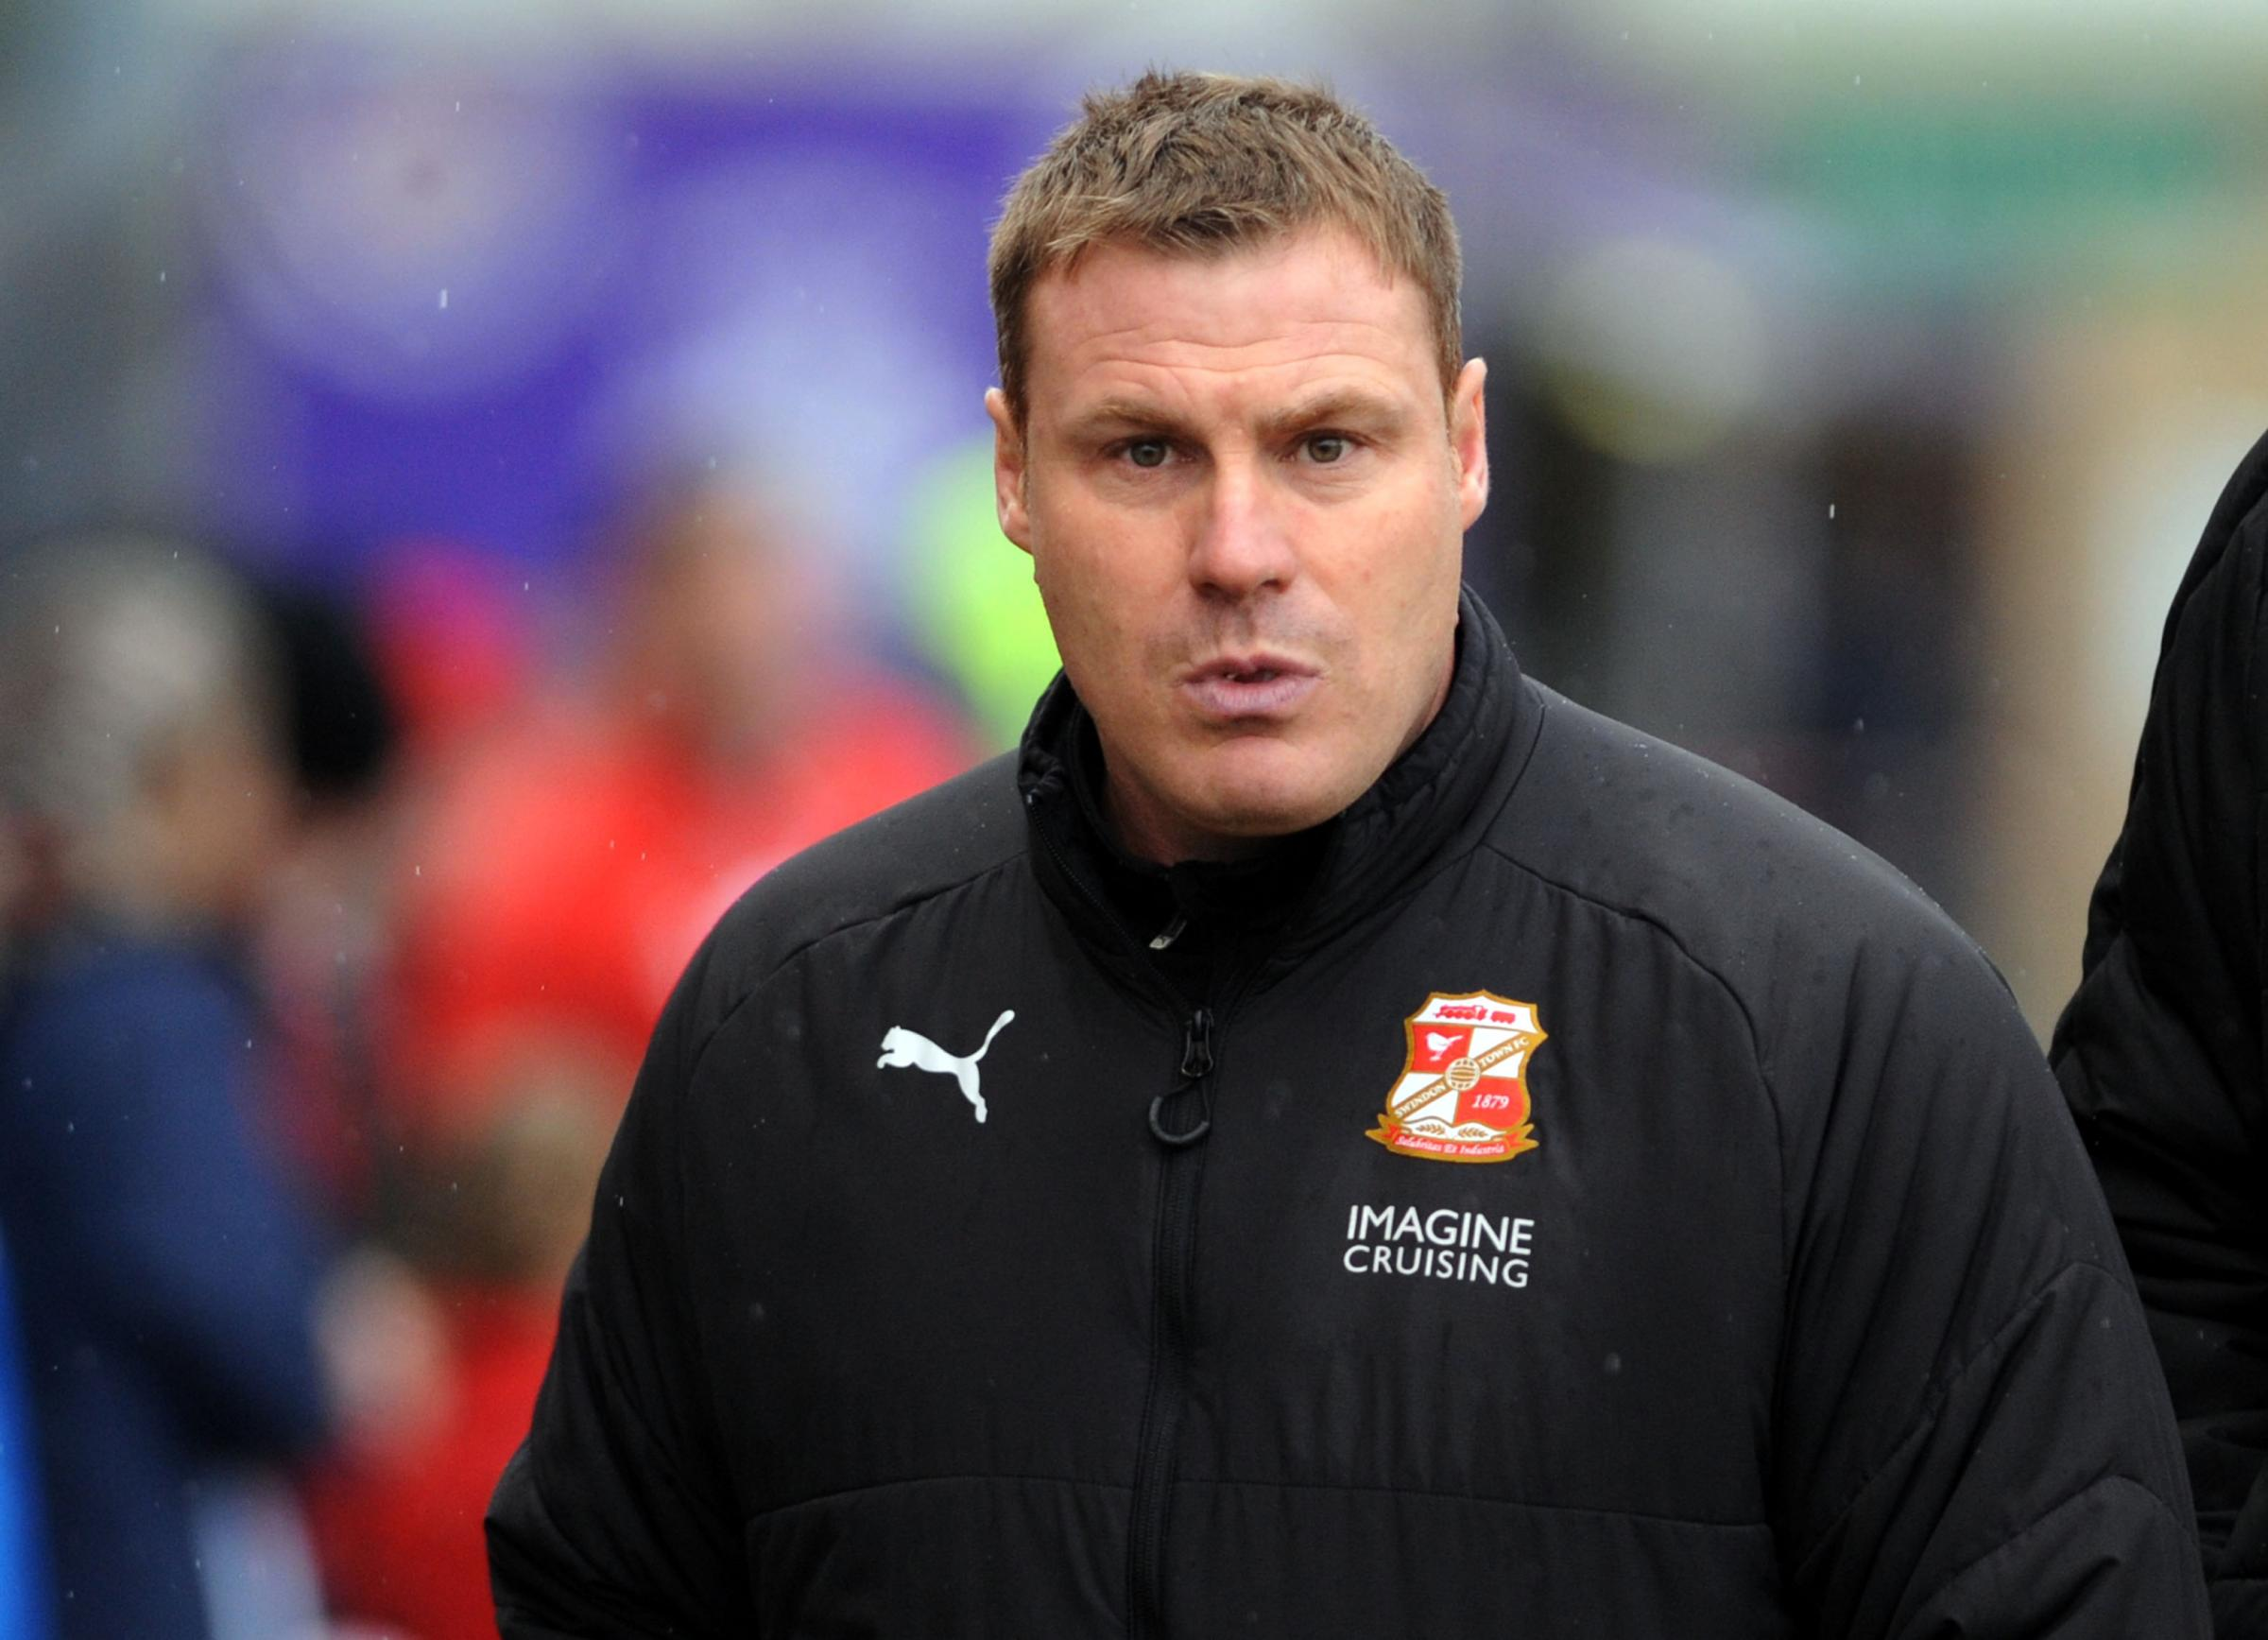 Swindon Town boss David Flitcroft (Picture: DAVE EVANS)